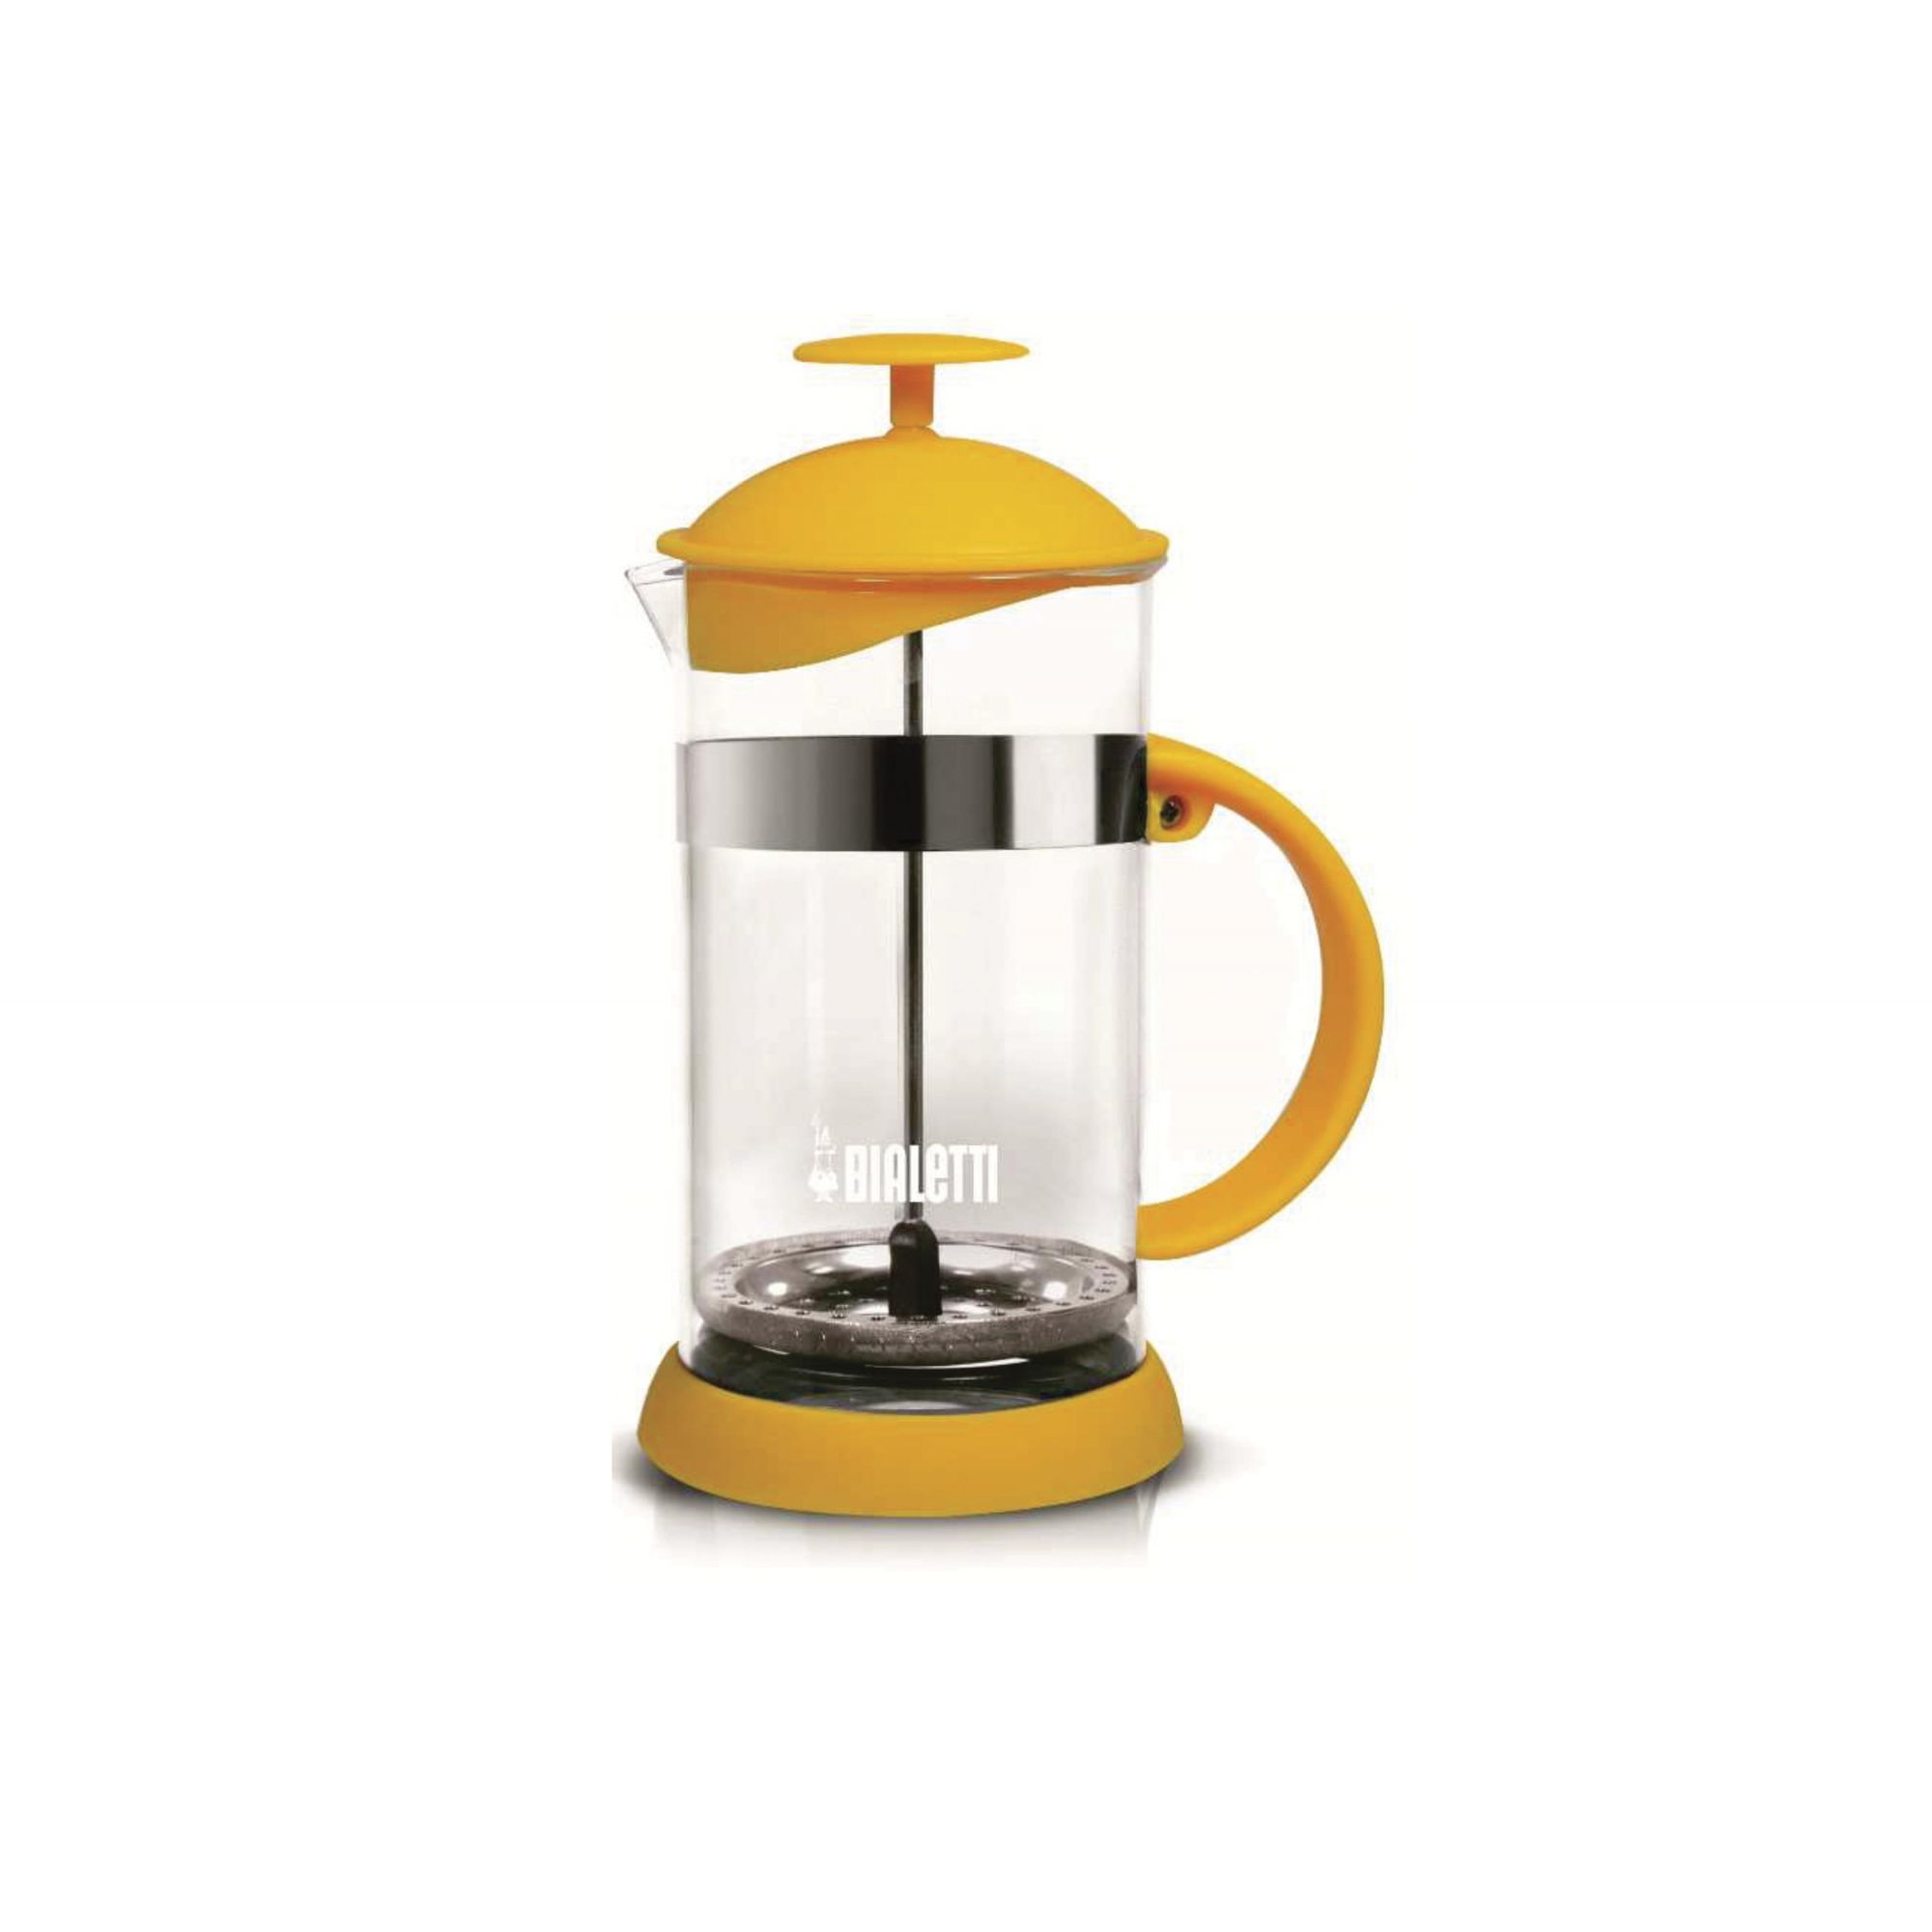 CAFETEIRA FRENCH PRESS 1L BIALETTI AMARELA